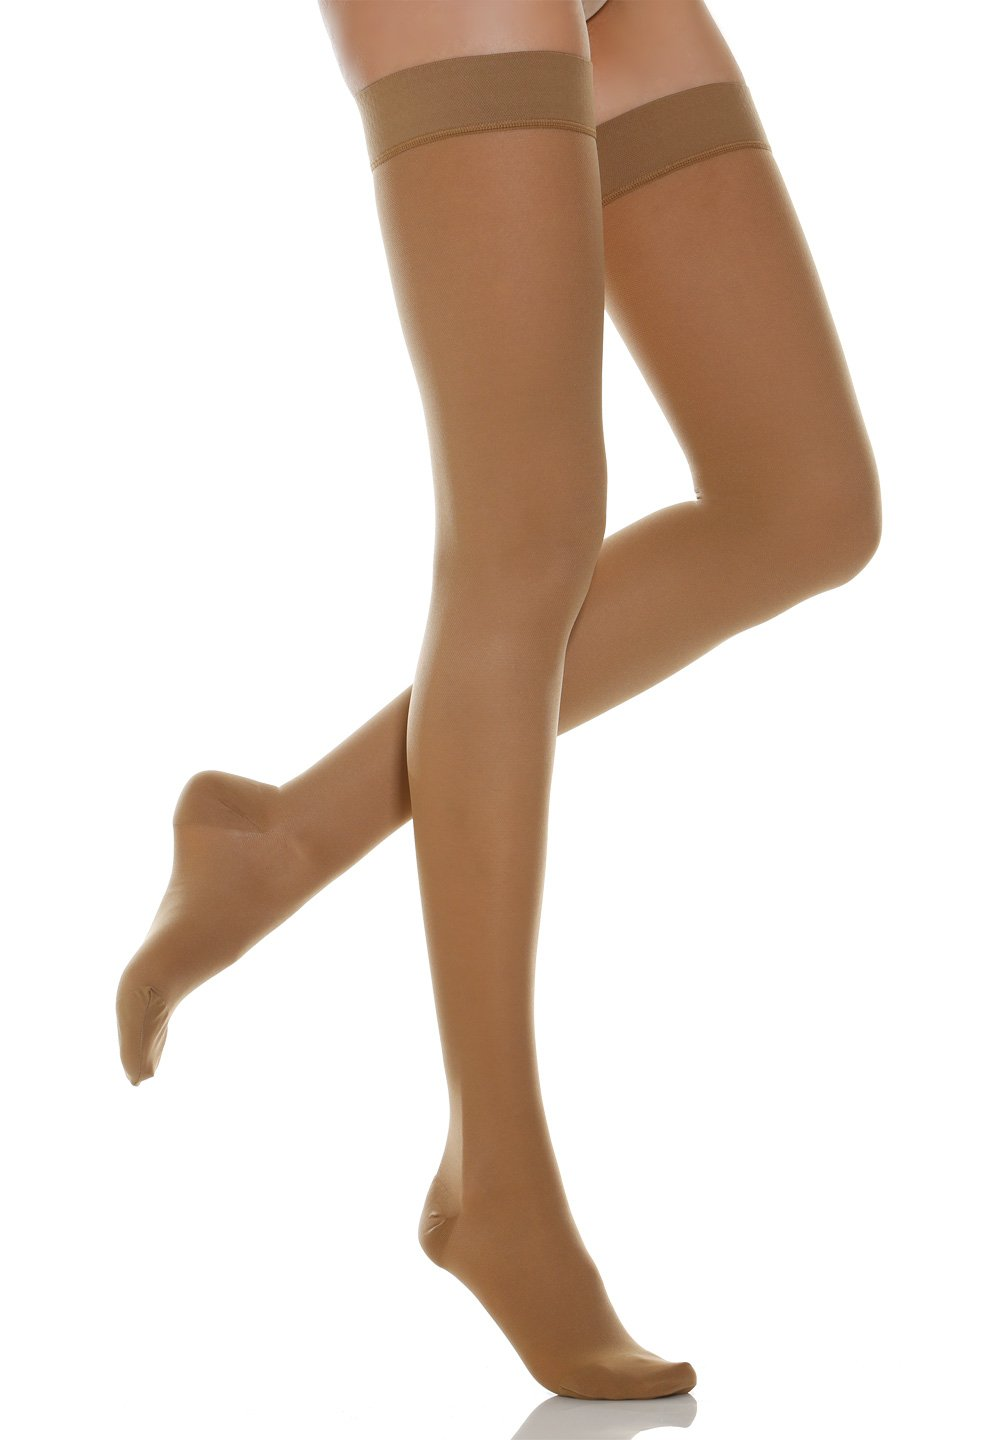 Relaxsan Basic 970 - firm support Thigh High W//Lace stockings 20-30 mmHg Calze G.T. S.r.l.